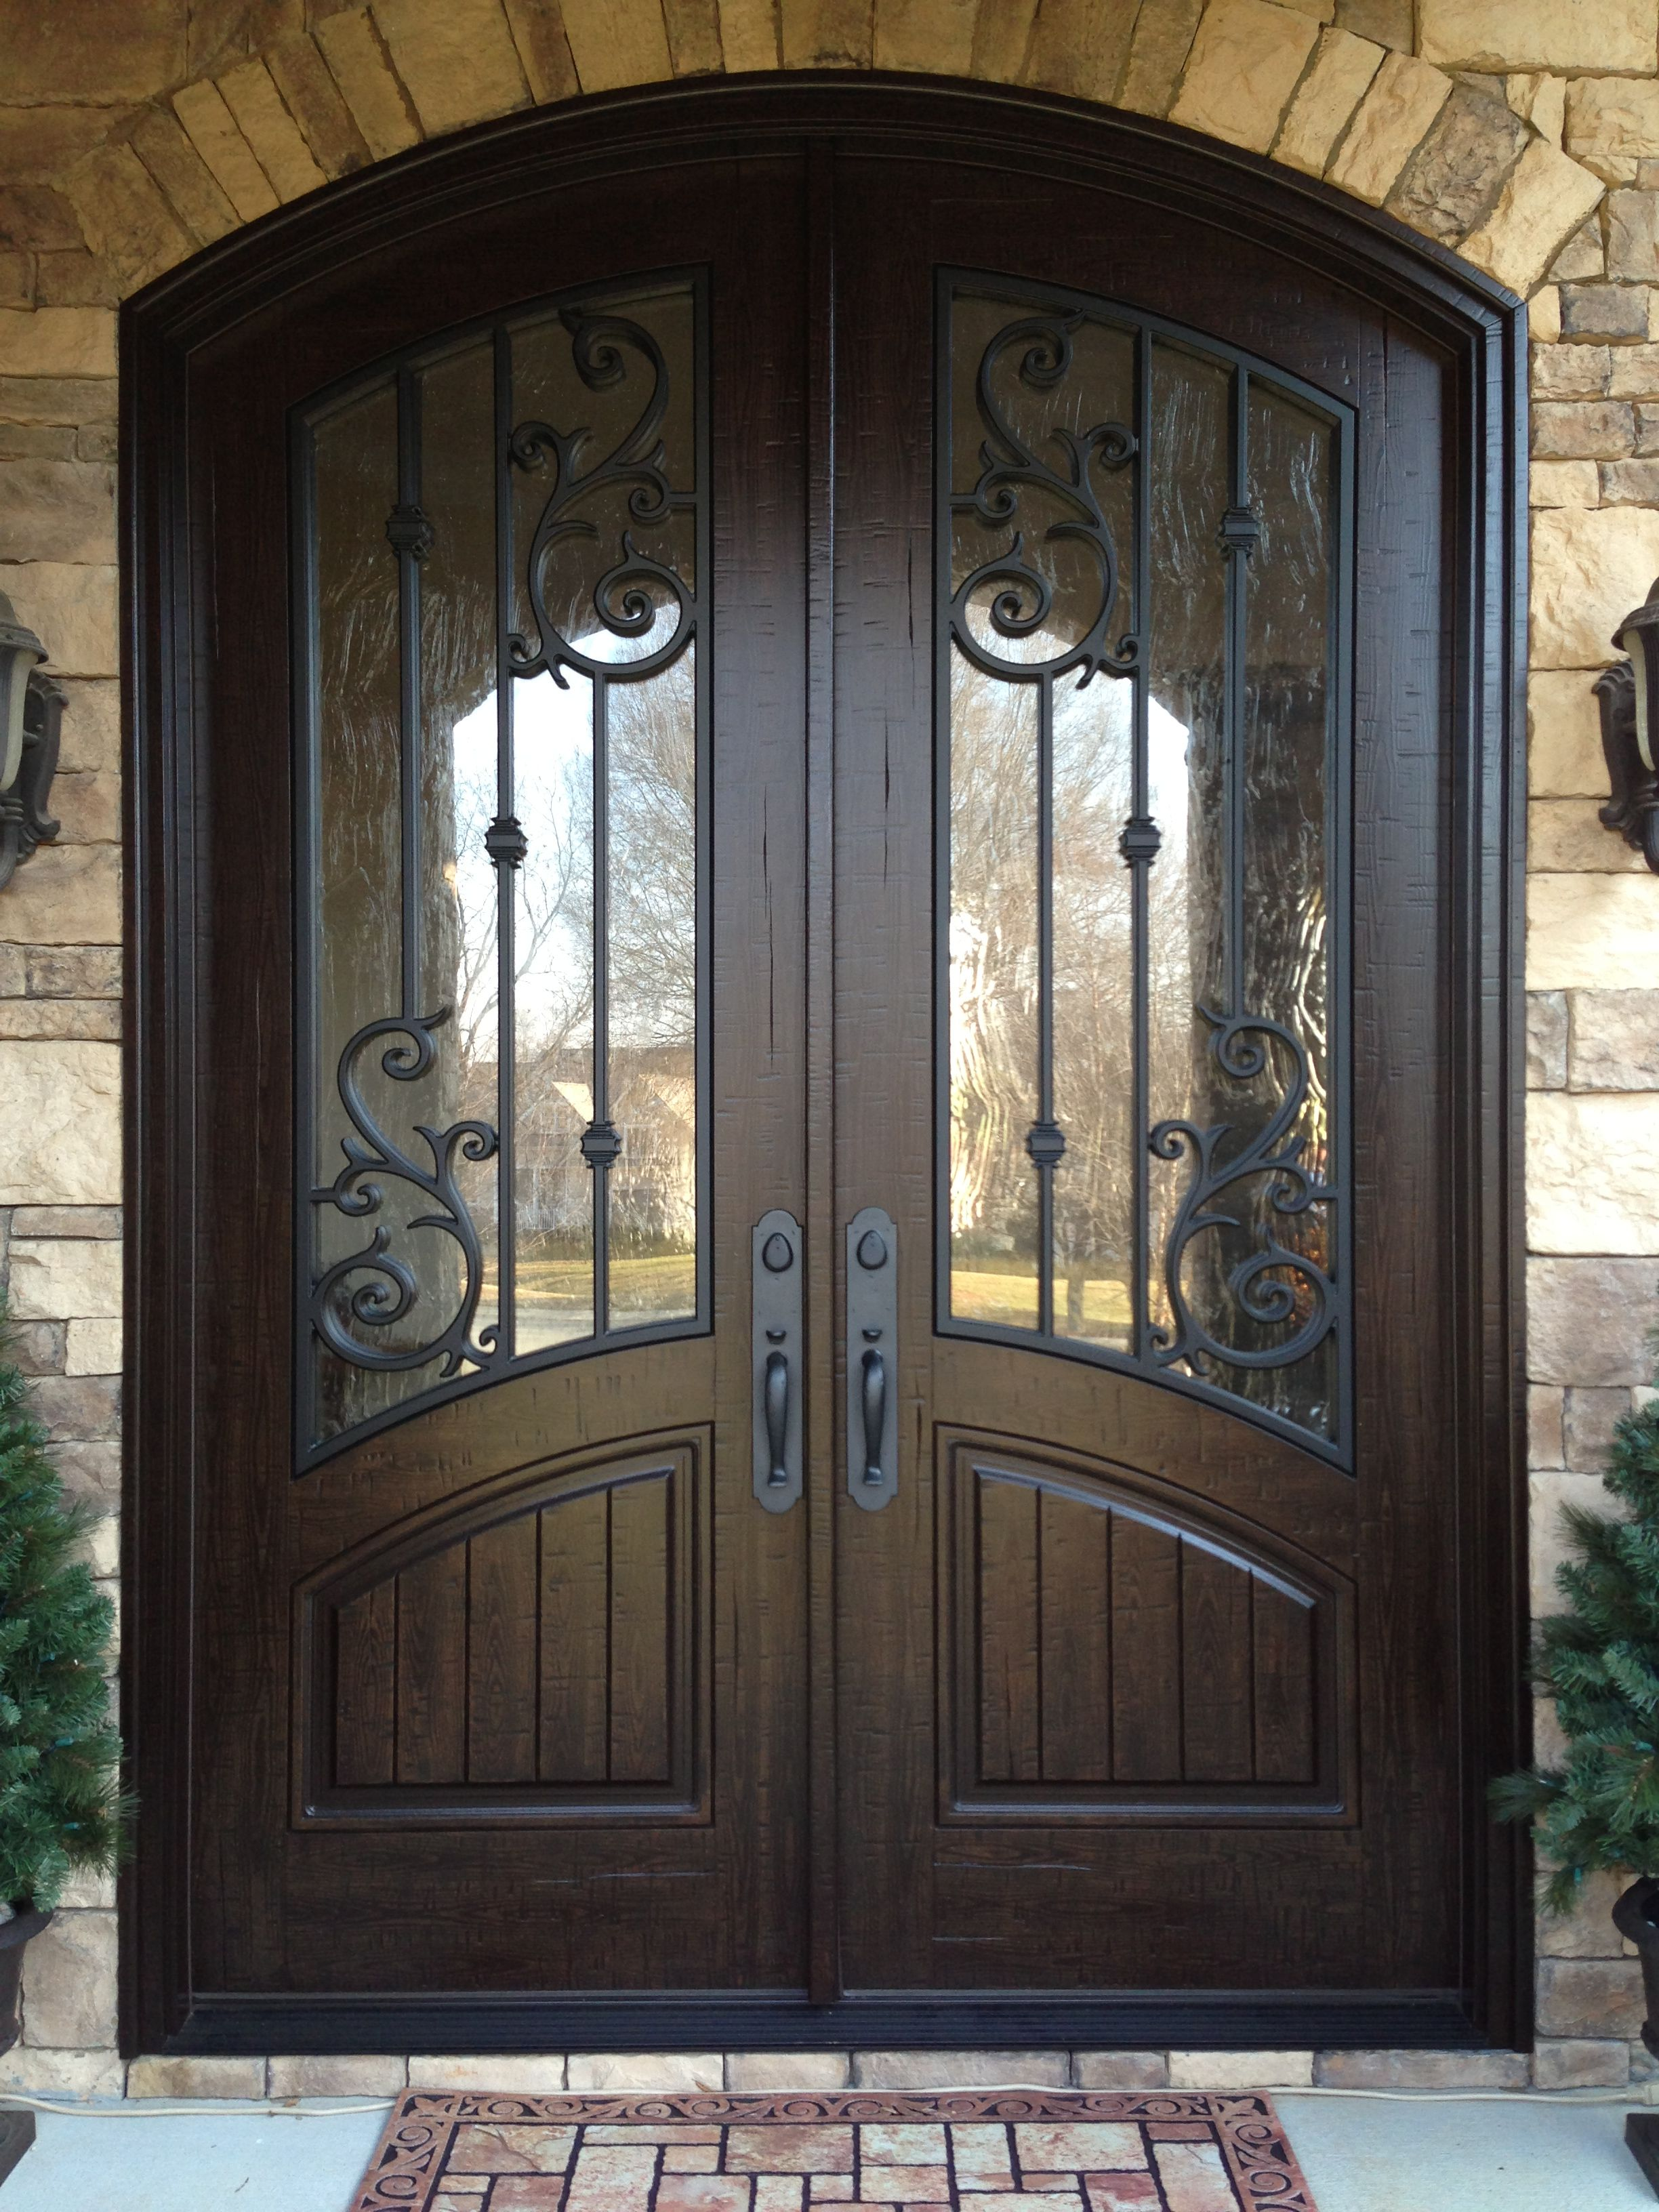 Looks like the door is frowning double front entry doors for Residential front doors with glass